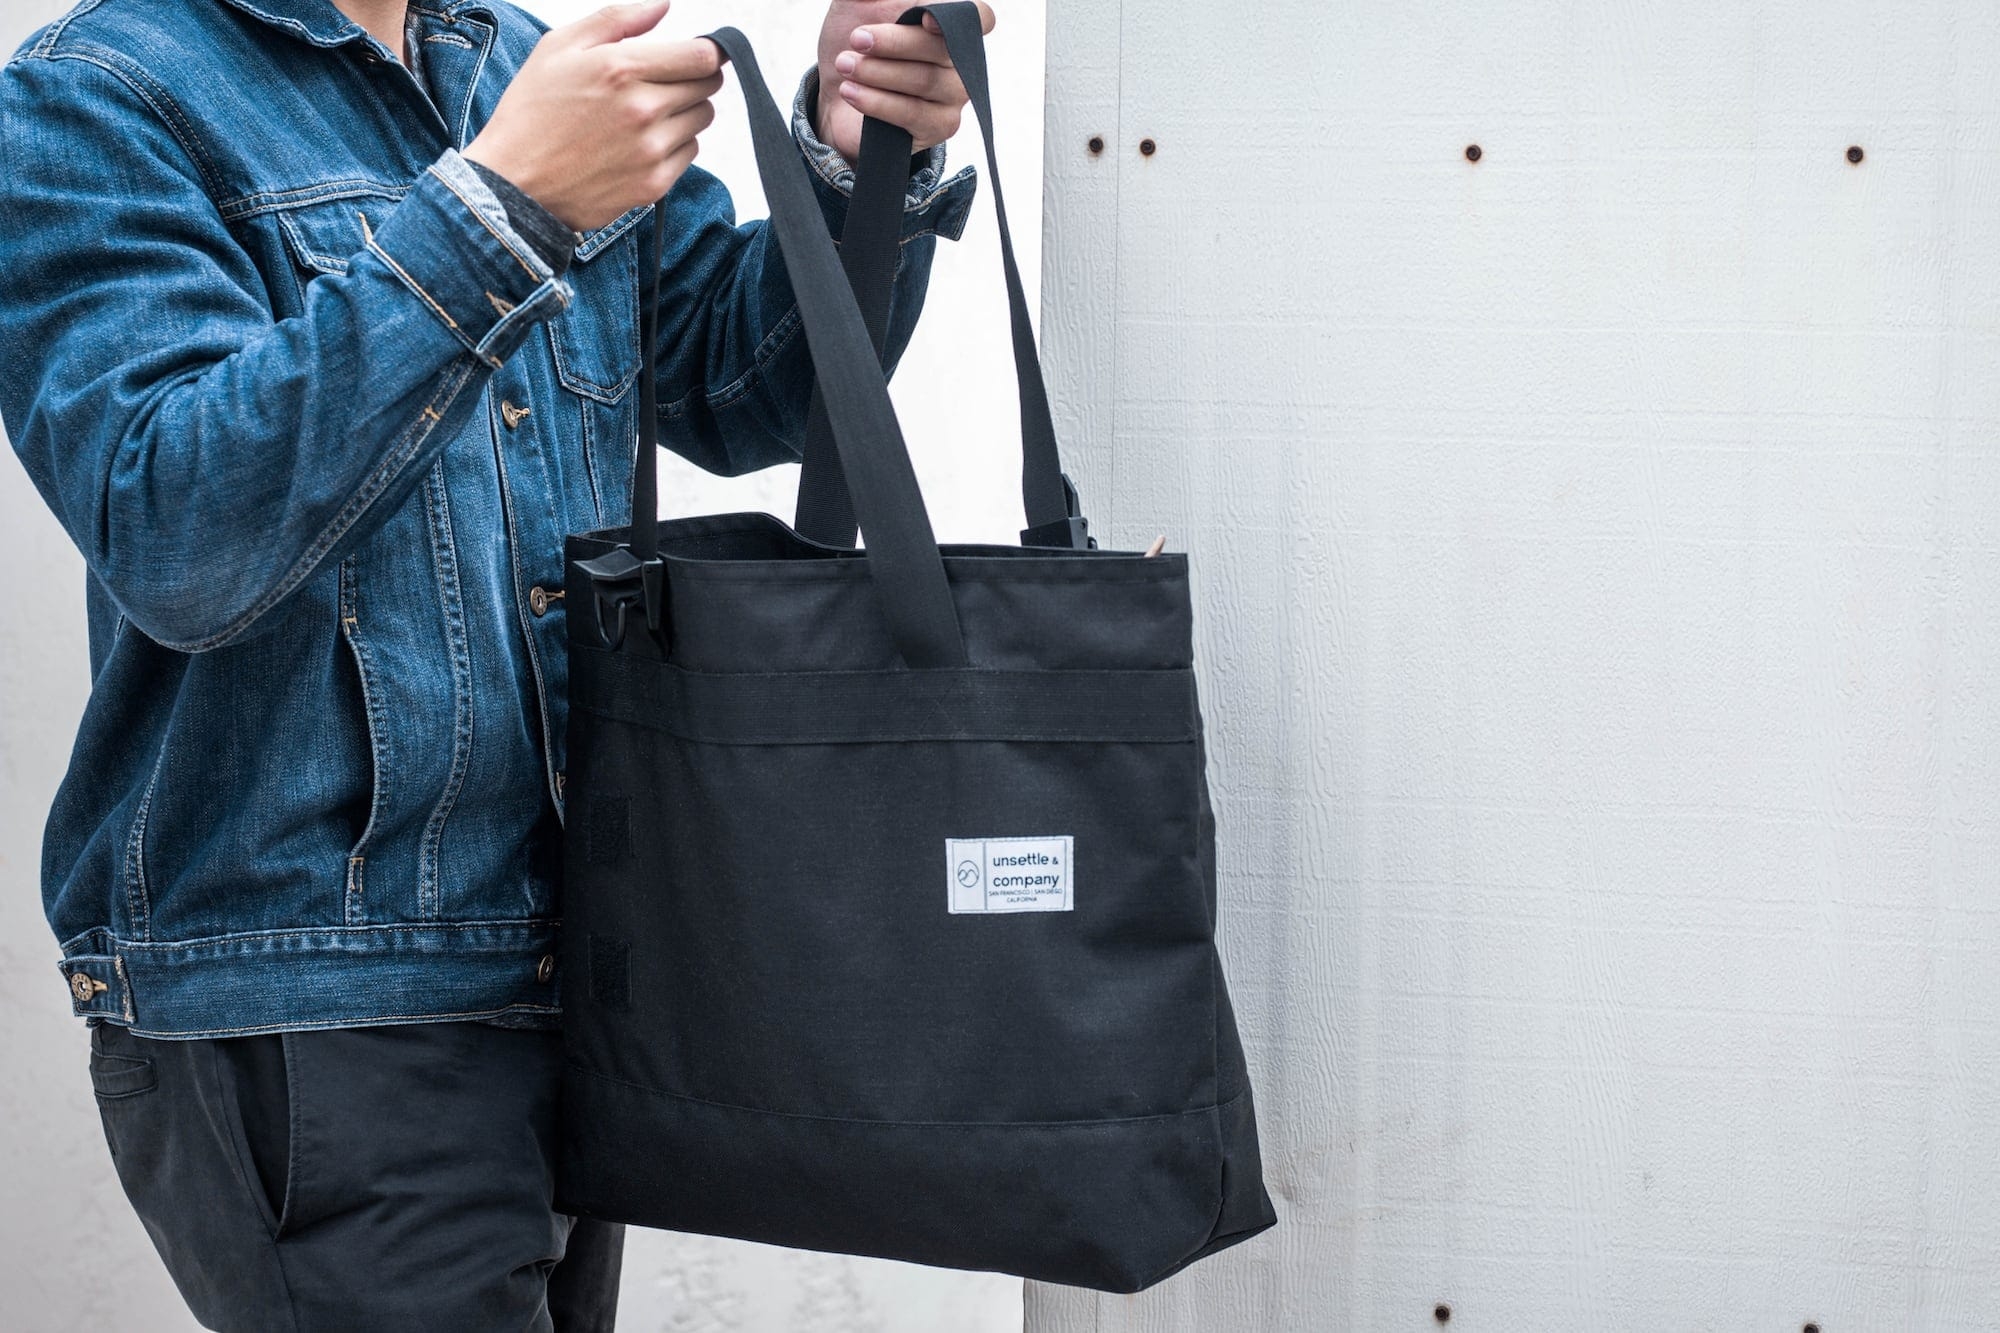 commuter tote bag lifestyle 3